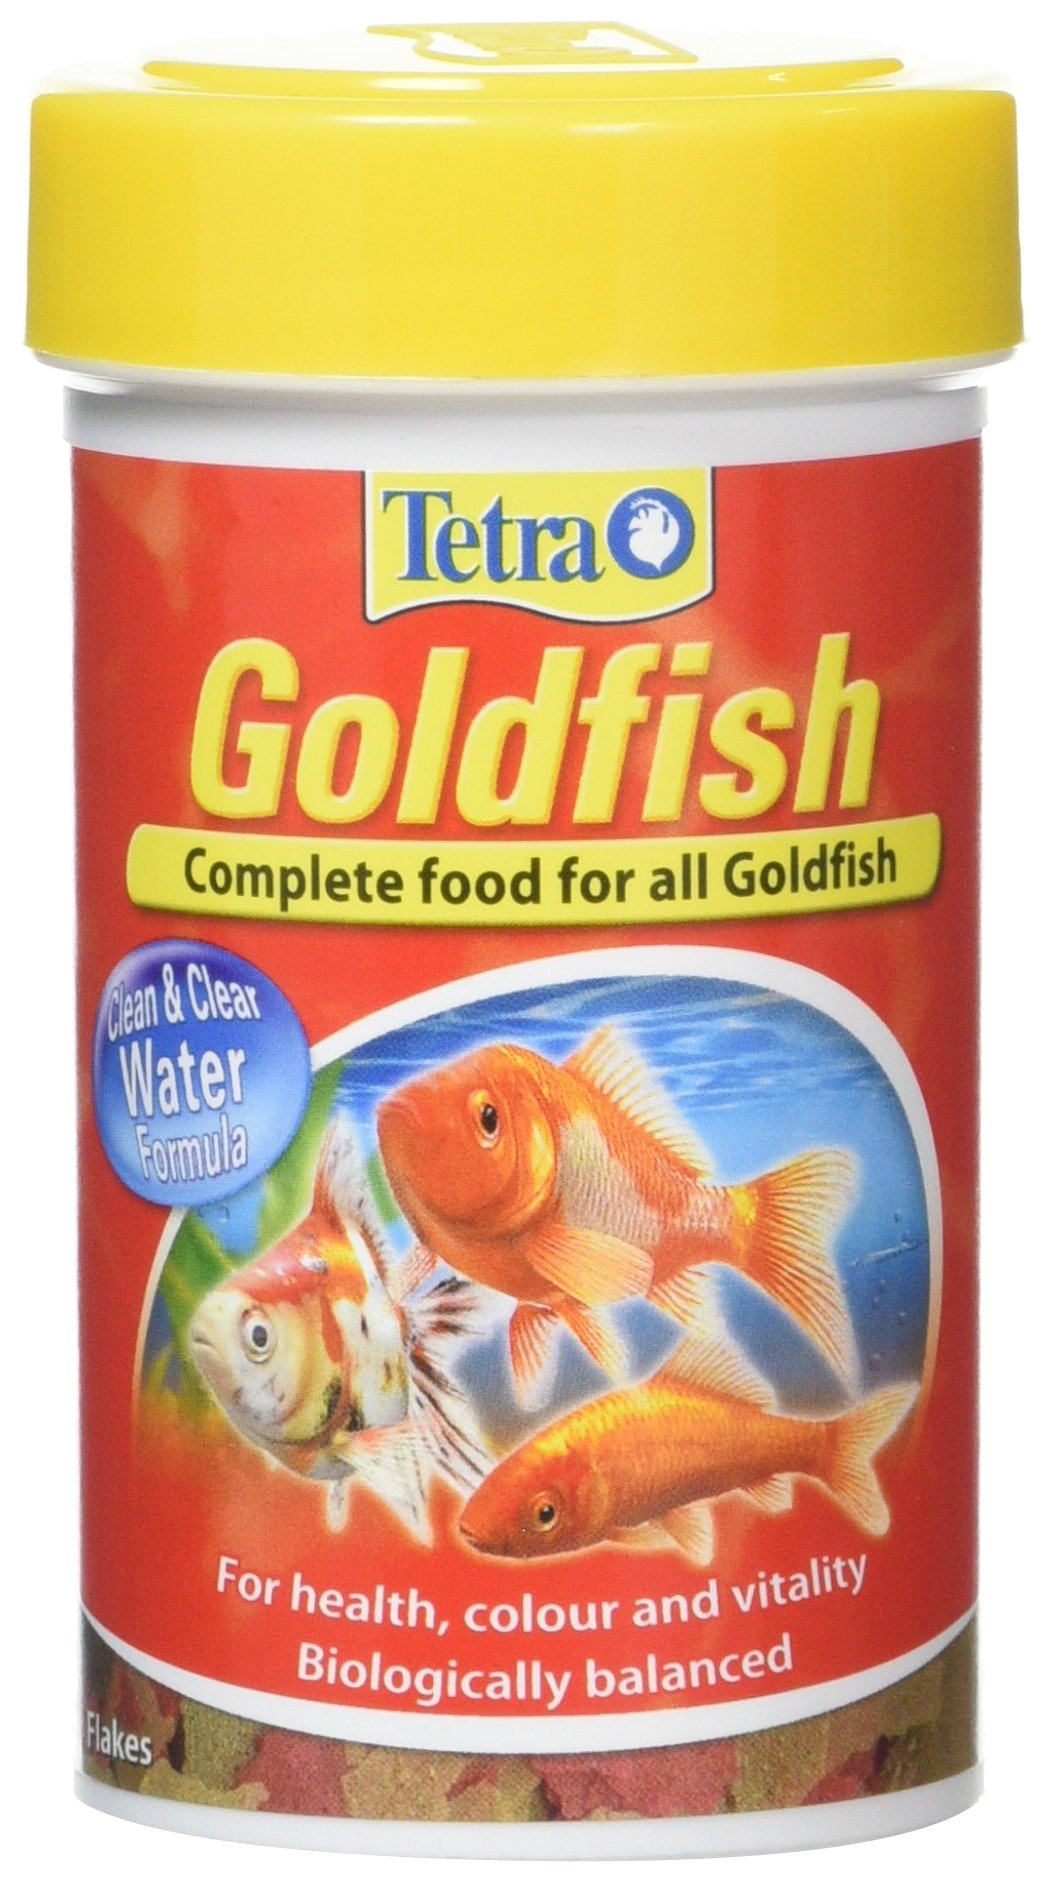 Floating Fish Food Sticks Koi Carp Goldfish Feed 10 Kg Sack Rich And Magnificent Aquariums & Tanks Pond Mix Pet Supplies